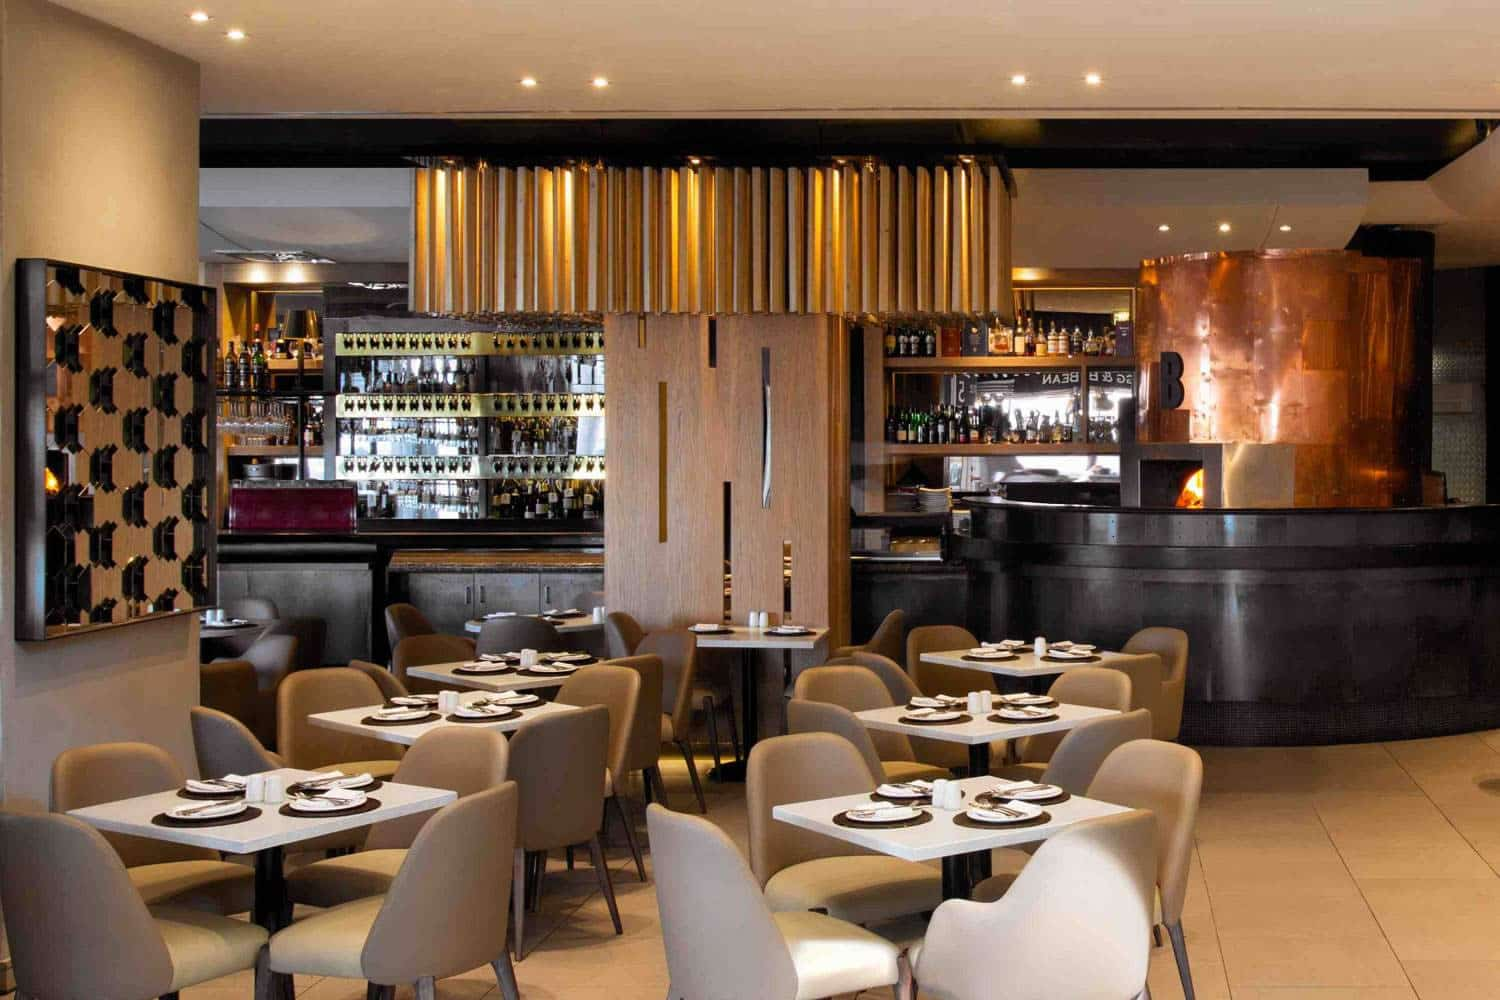 Details Of The New Interior Design Of Balduccis Restaurant In Cape Town By  ARRCC